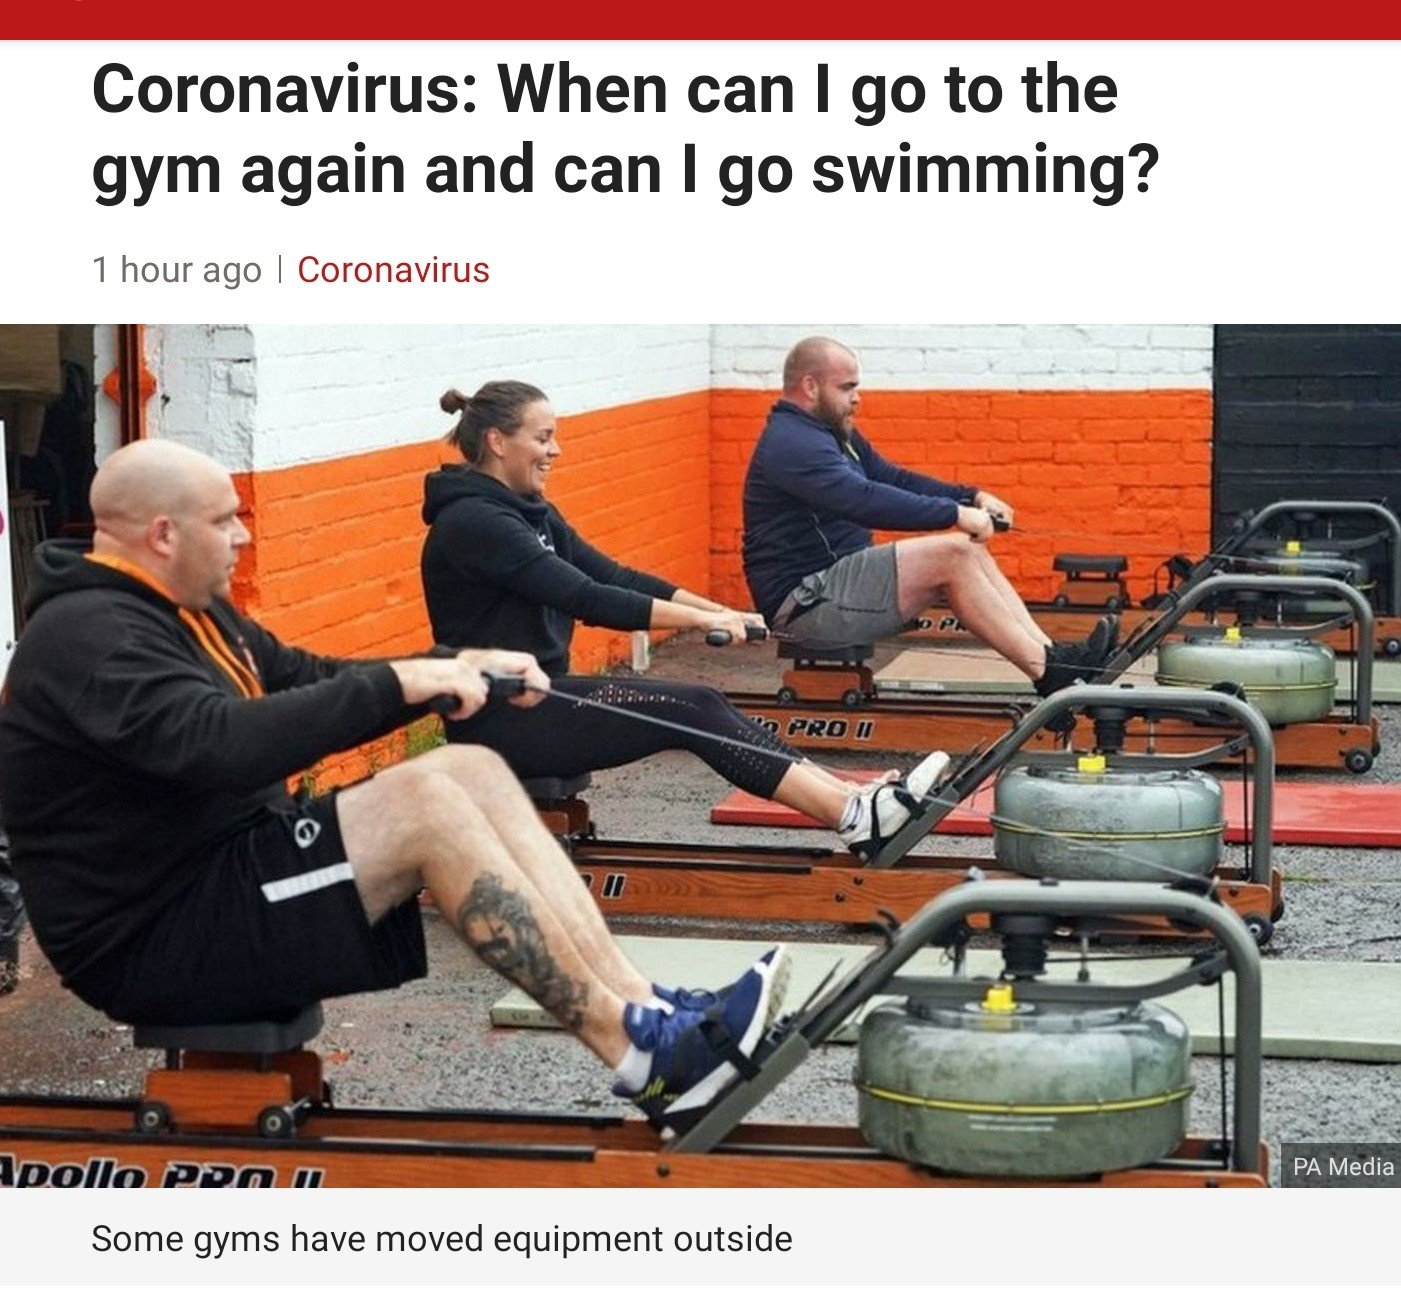 Coronavirus: When can I go to the gym again and can I go swimming?